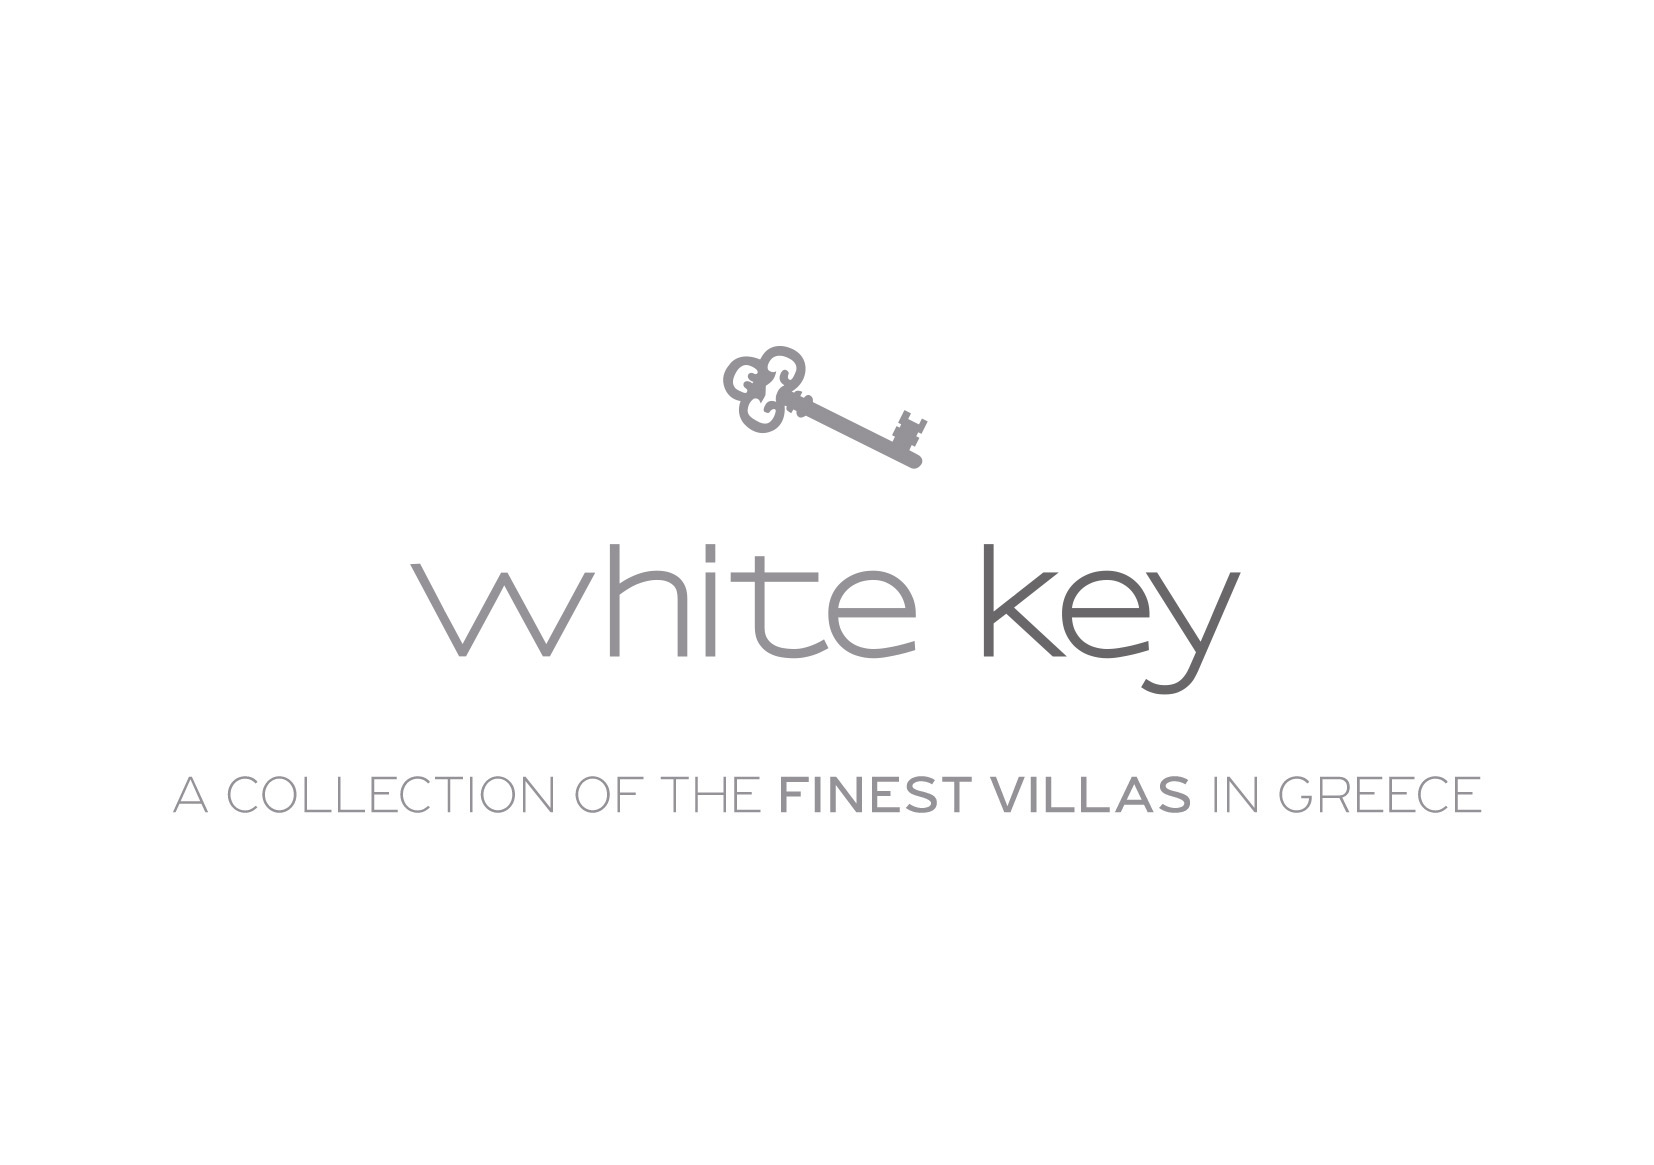 logo-wk-up-key-collection